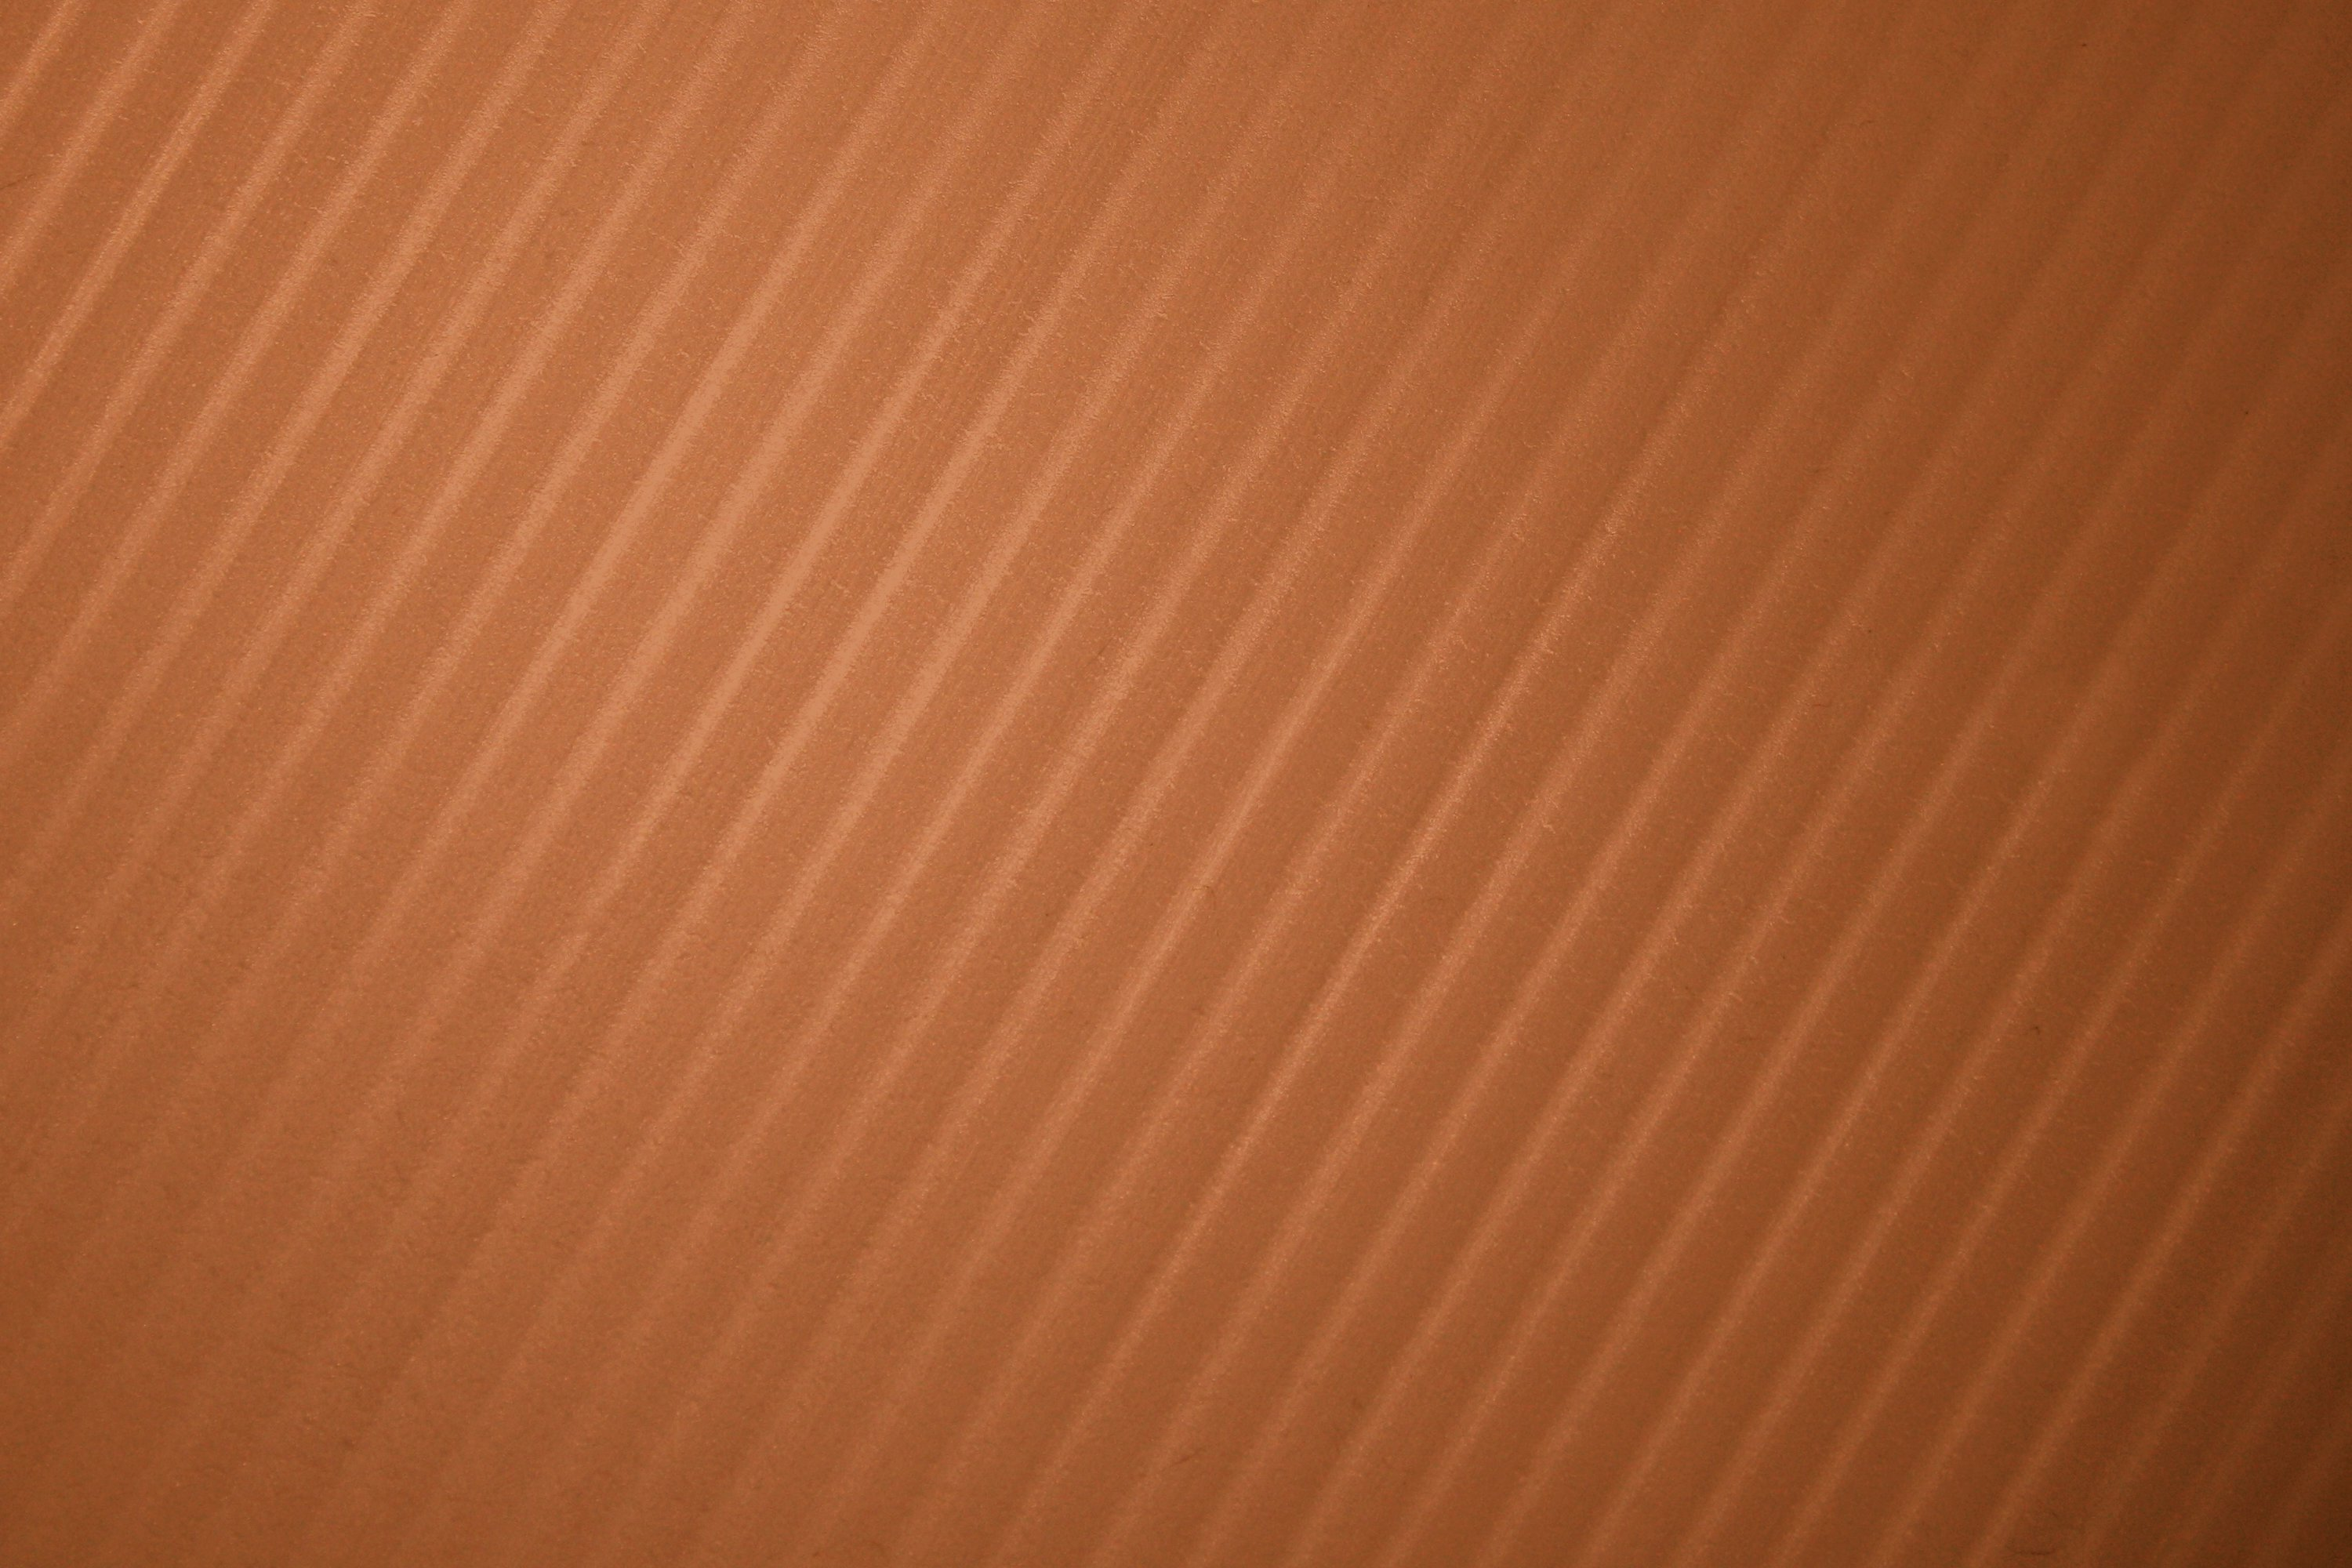 Off white diagonal striped plastic texture picture free photograph - Rust Orange Diagonal Striped Plastic Texture